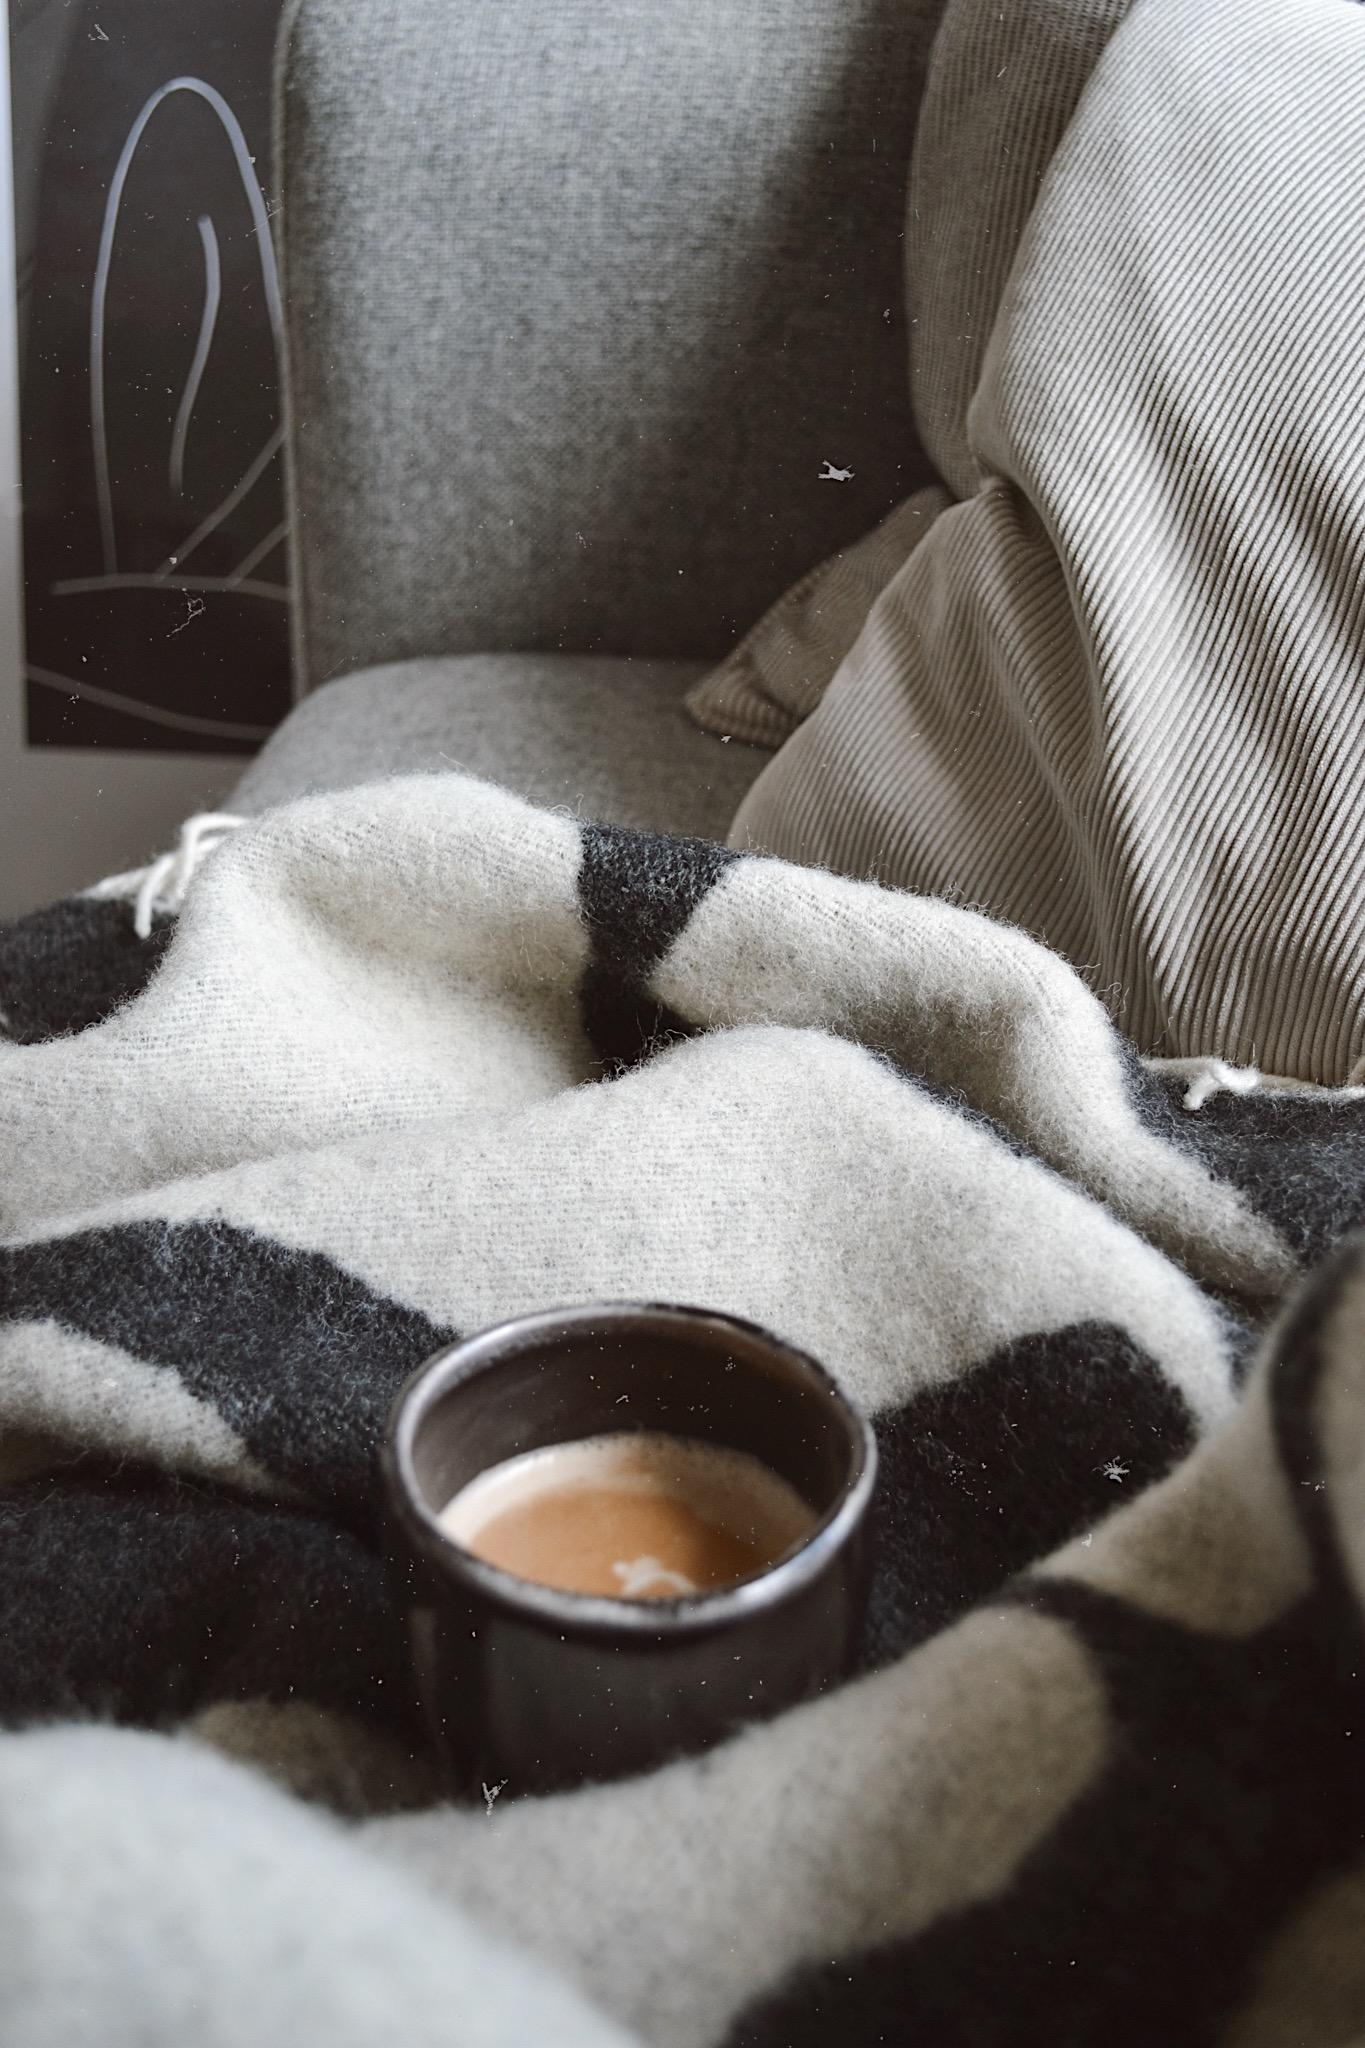 sundays & coffee #qualitytime #sundaysathome #weekend #coffeelovers #cozyinterior #couchstyle